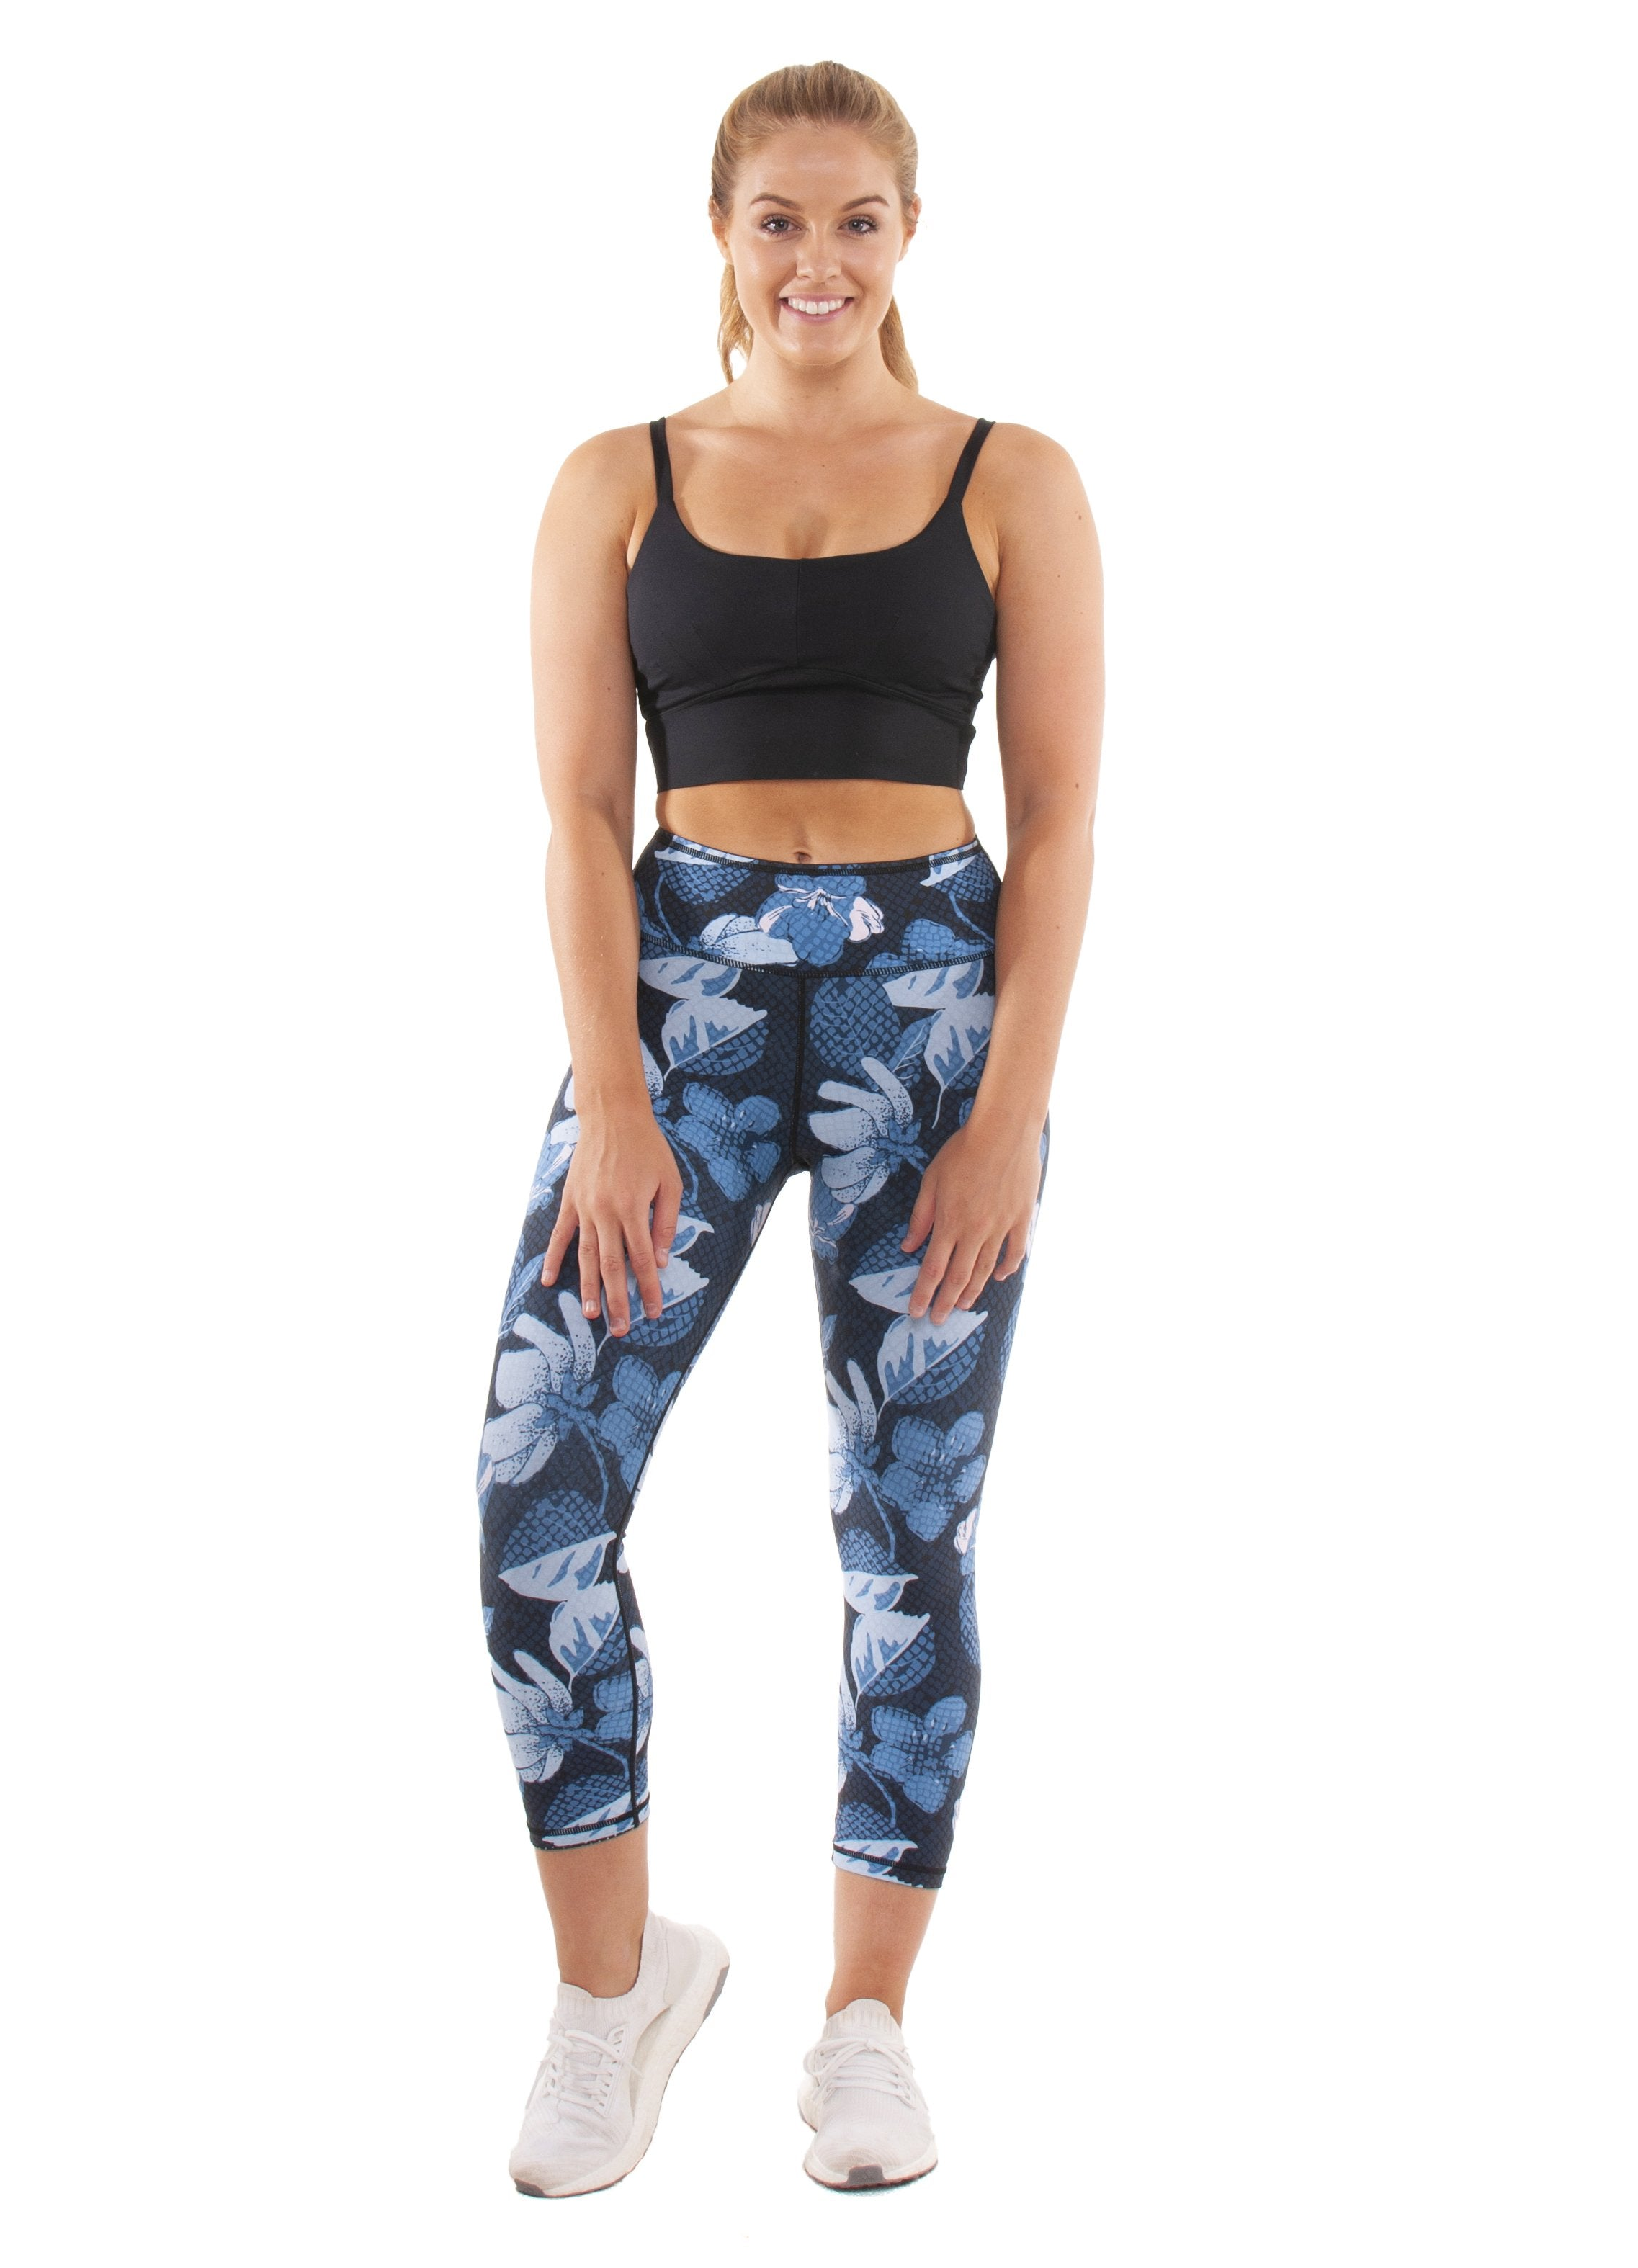 Akia Rose Activewear - 7/8 reversible legging - flower print on one side and dot print on other side